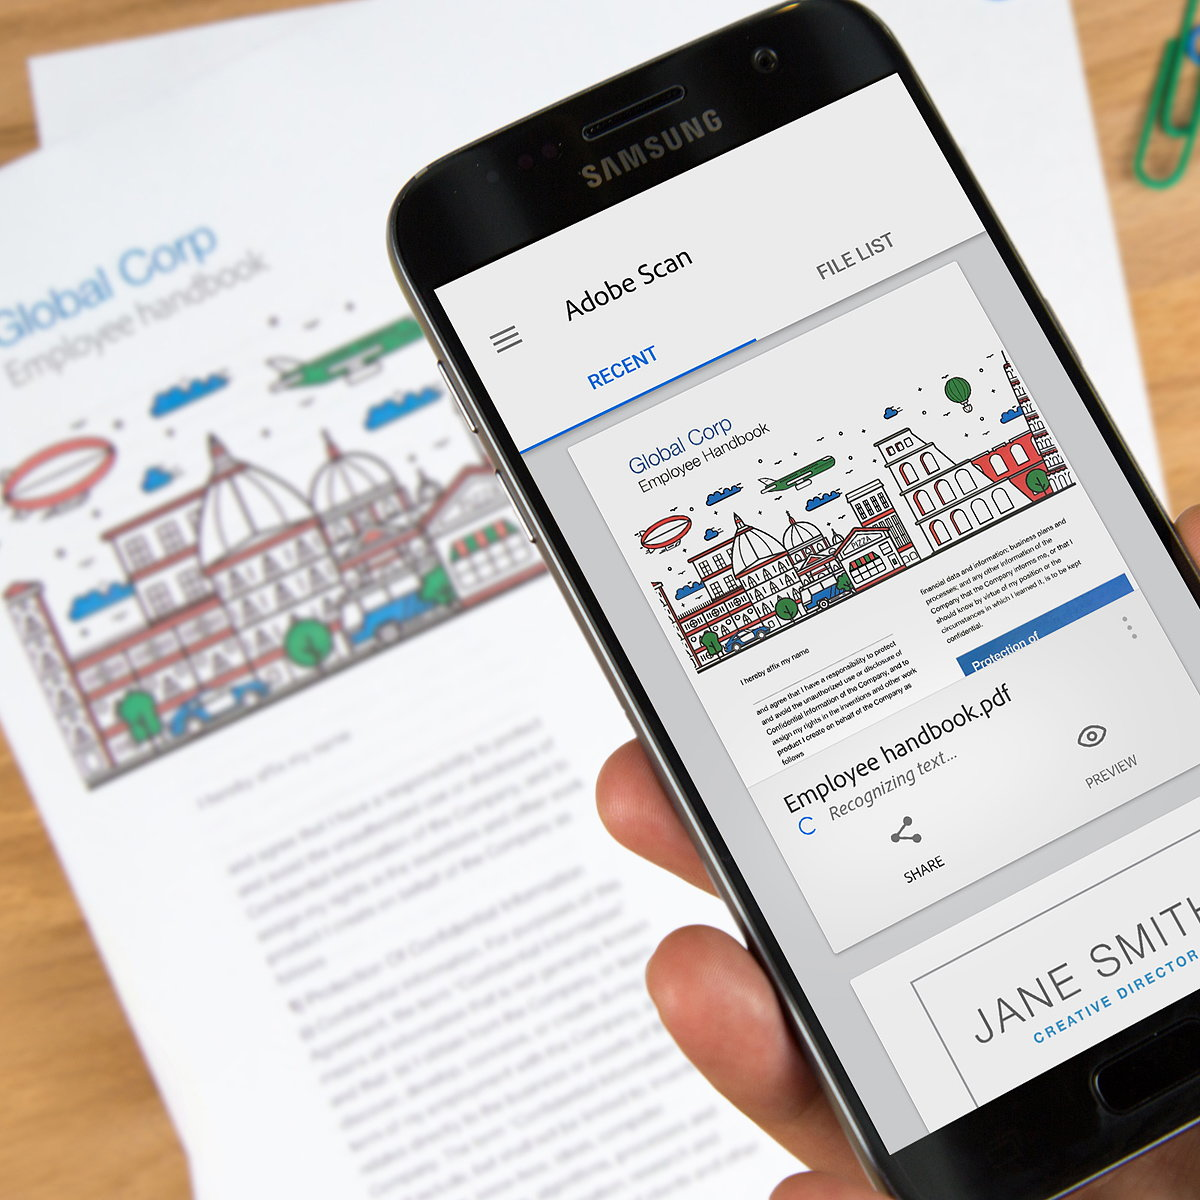 Adobe Scan - Turn Paper into Intelligent Digital Documents